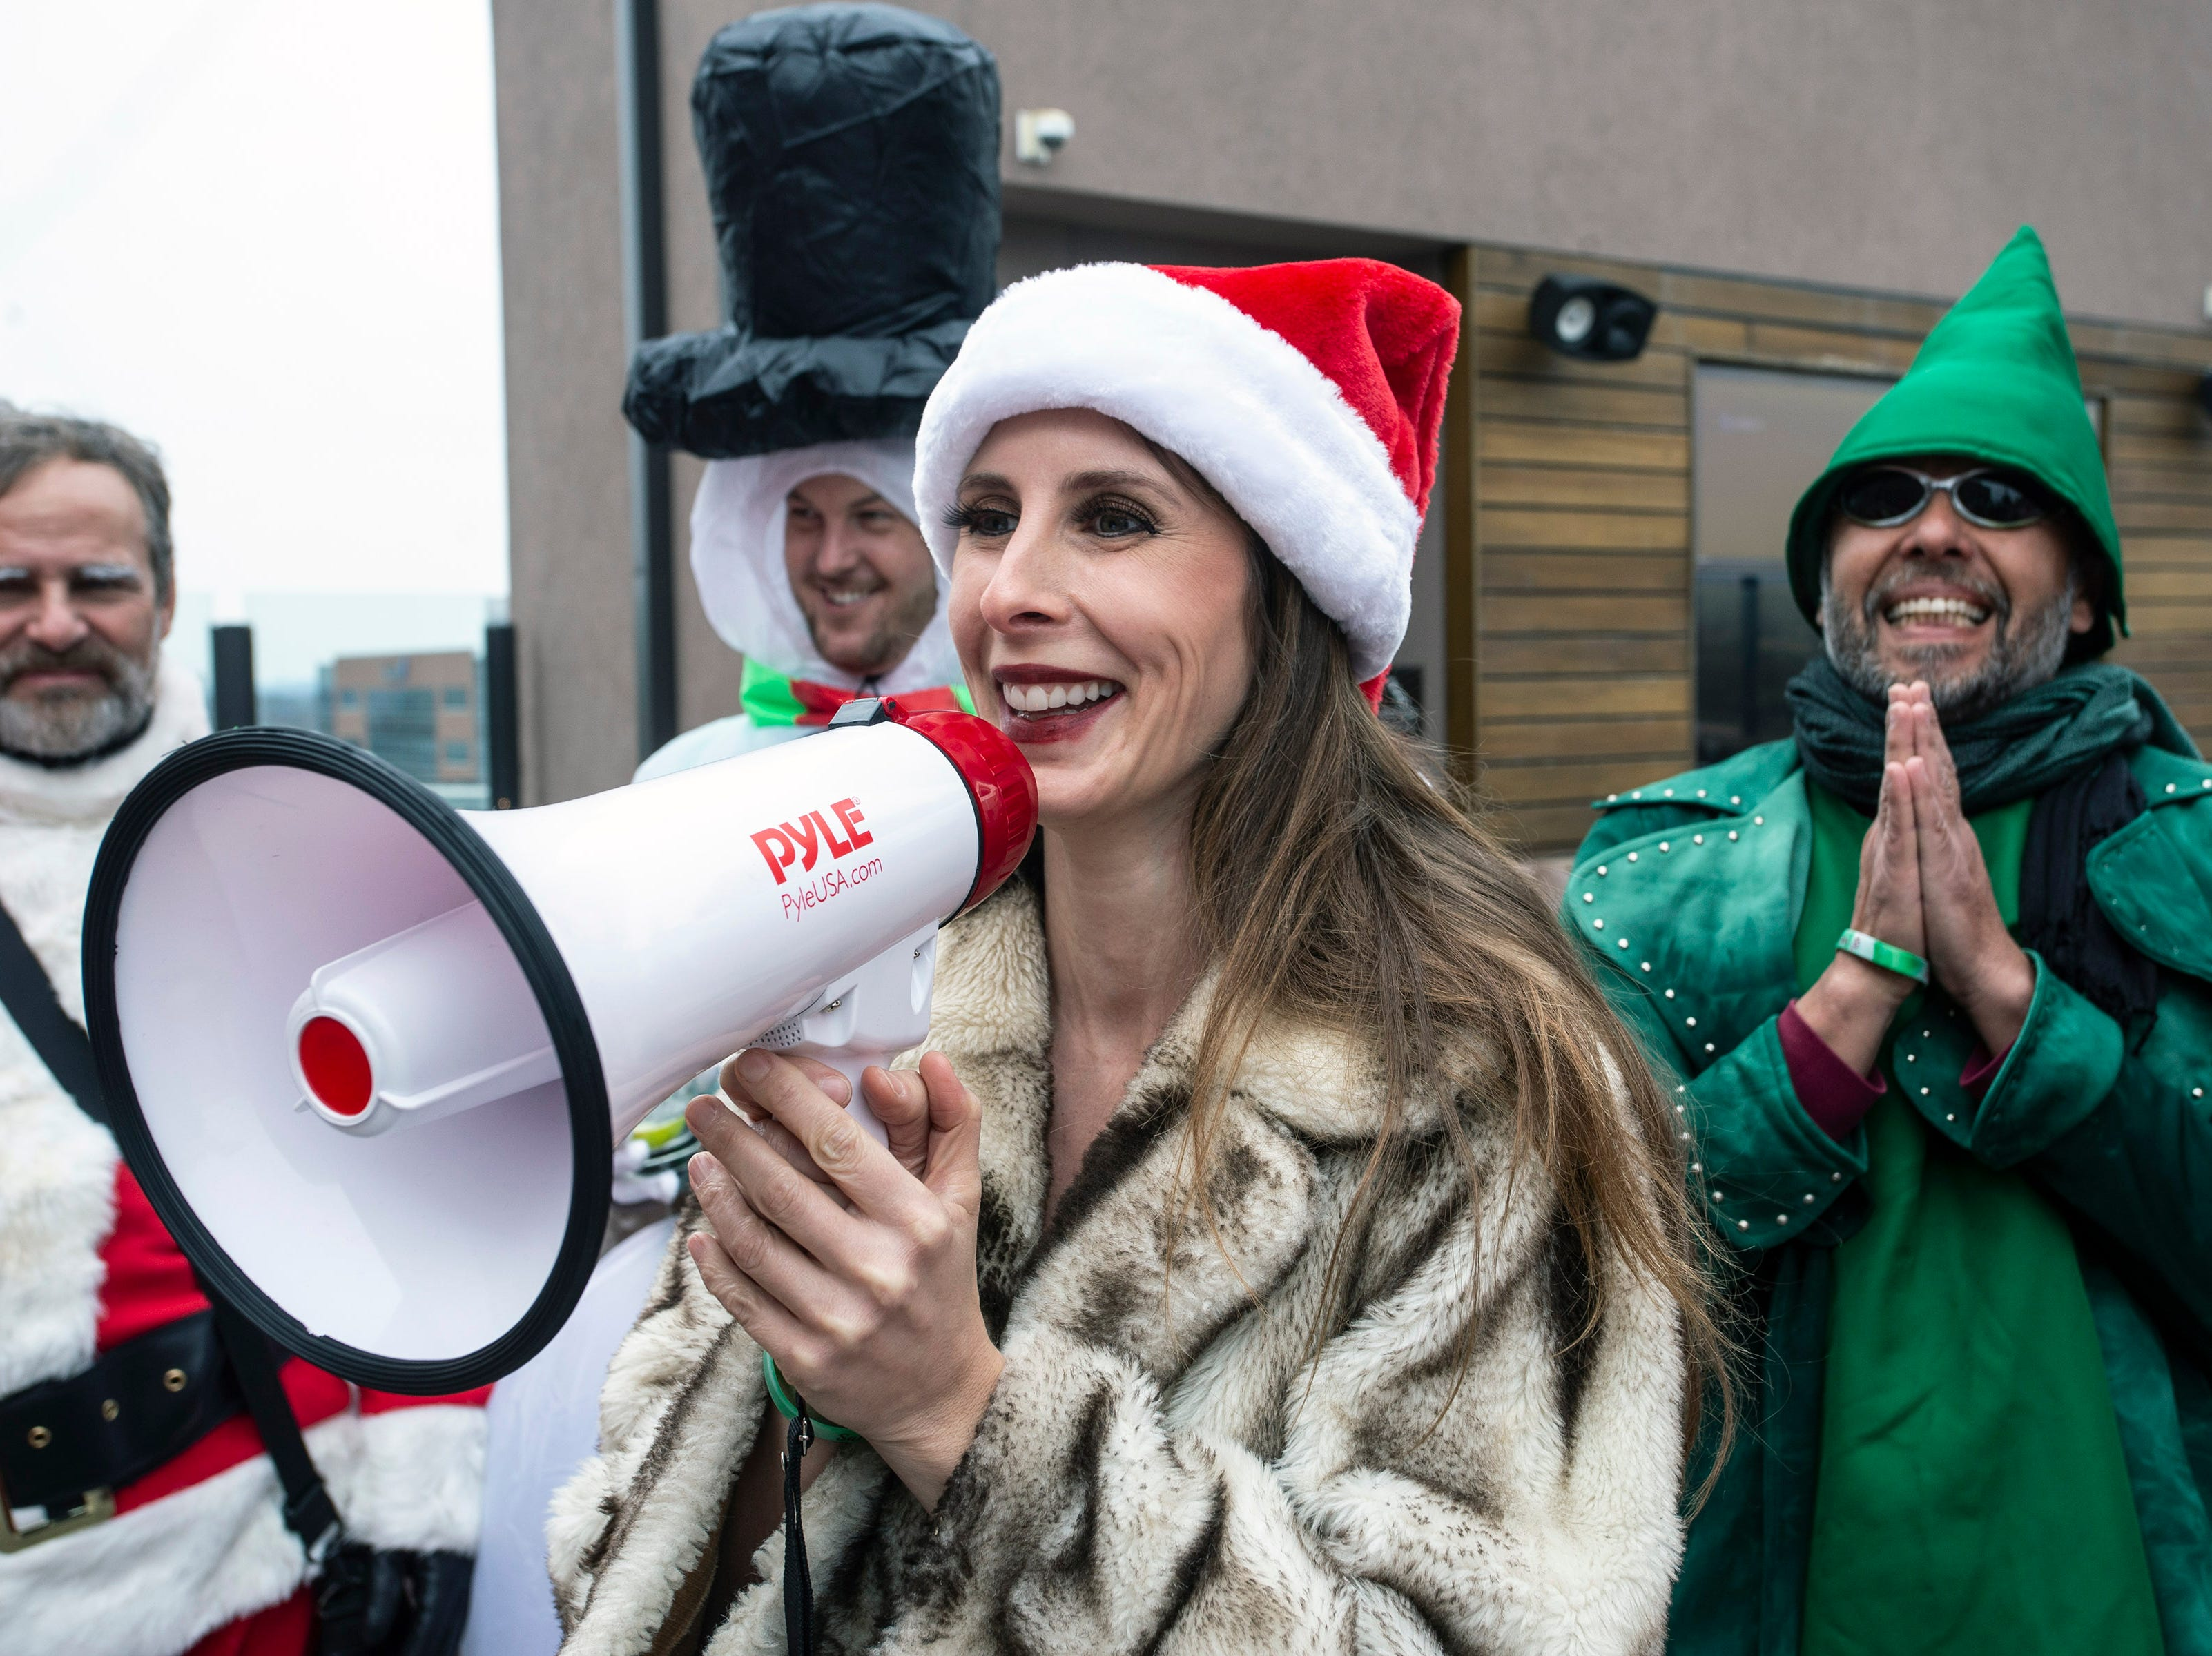 Sammy-Jo Hand guided a group of Santas and other holiday characters through a breathing exercise at the start of SantaCon on Saturday. 12/8/18